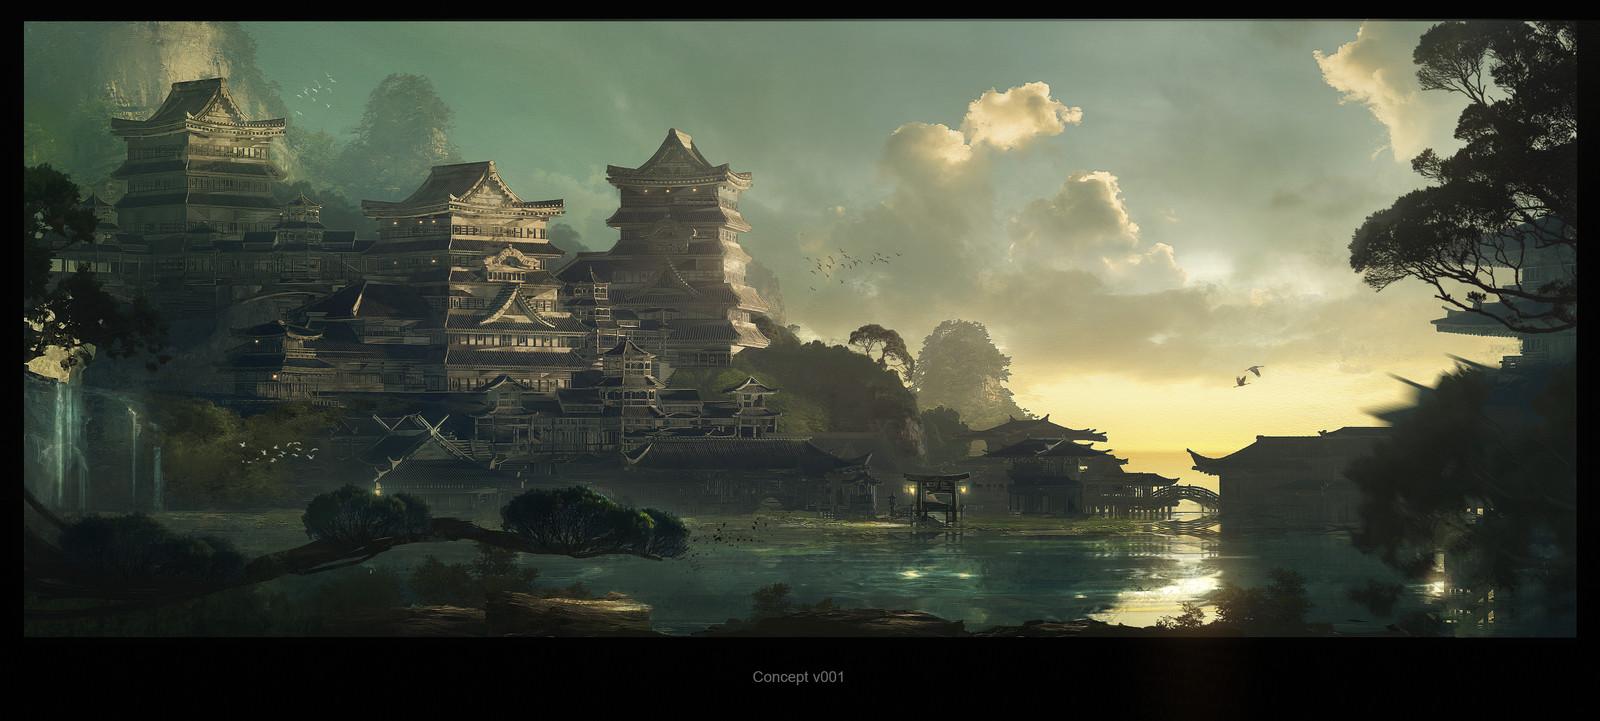 Feudal Japan: The Shogunate - Environment Design